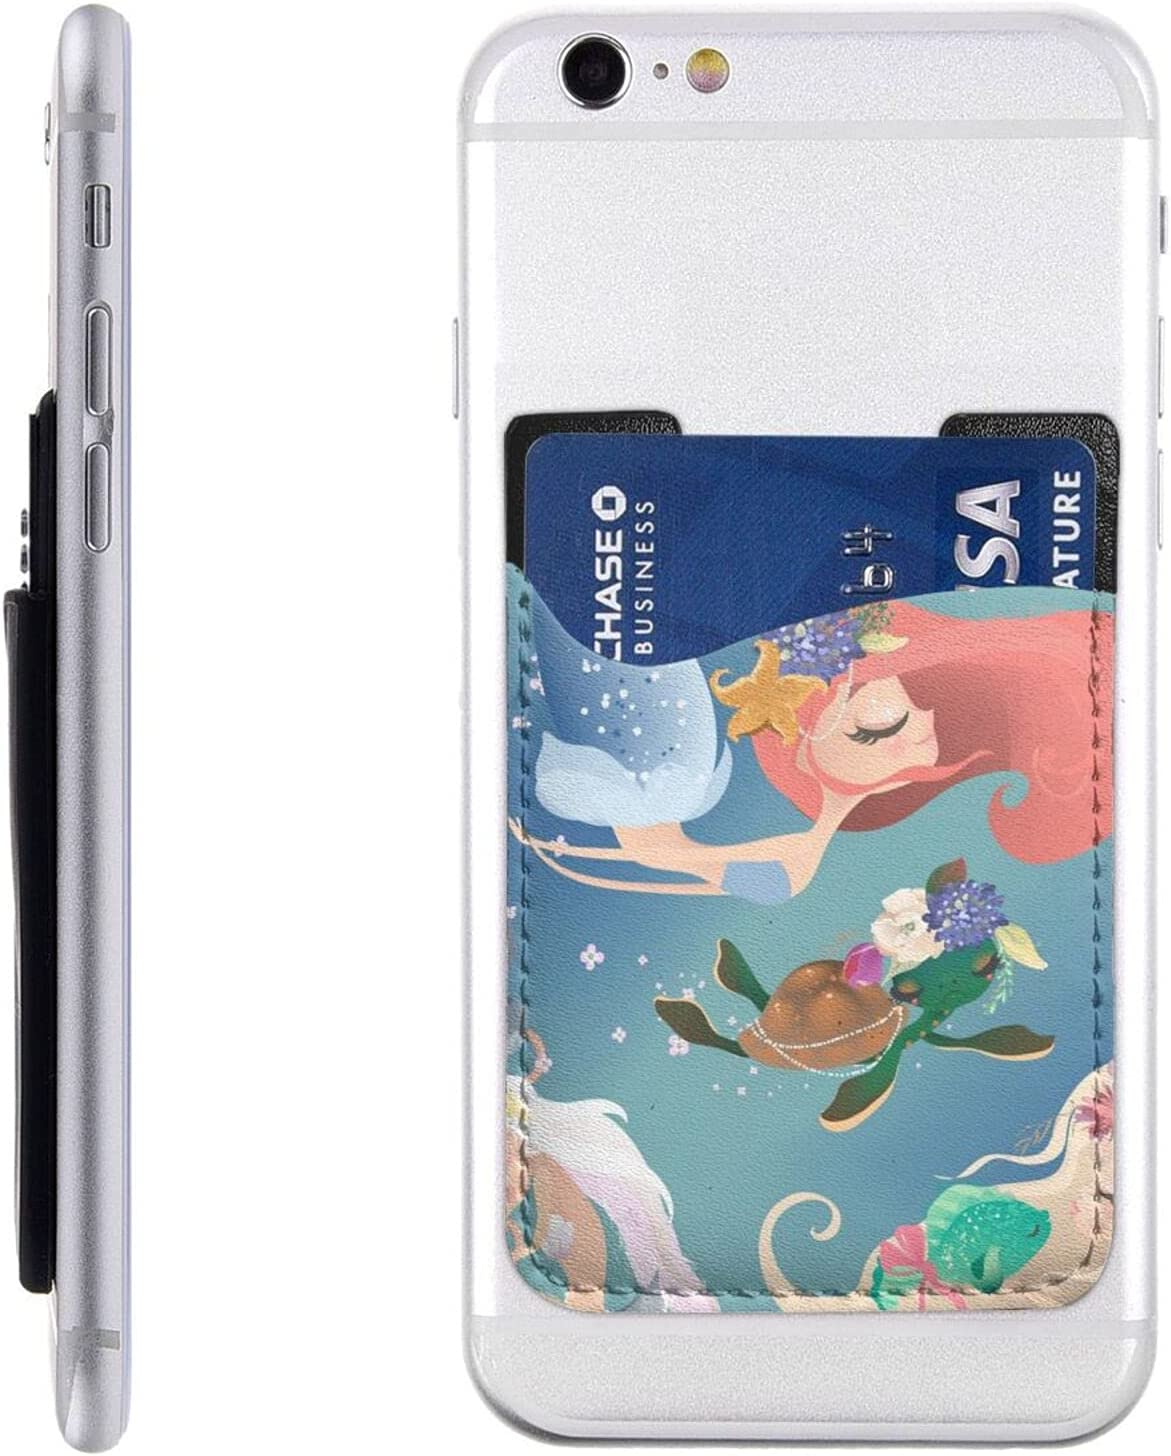 Cute Mermaid Girls Phone Card Wa Selling rankings Holder Free shipping anywhere in the nation Stick Cell On